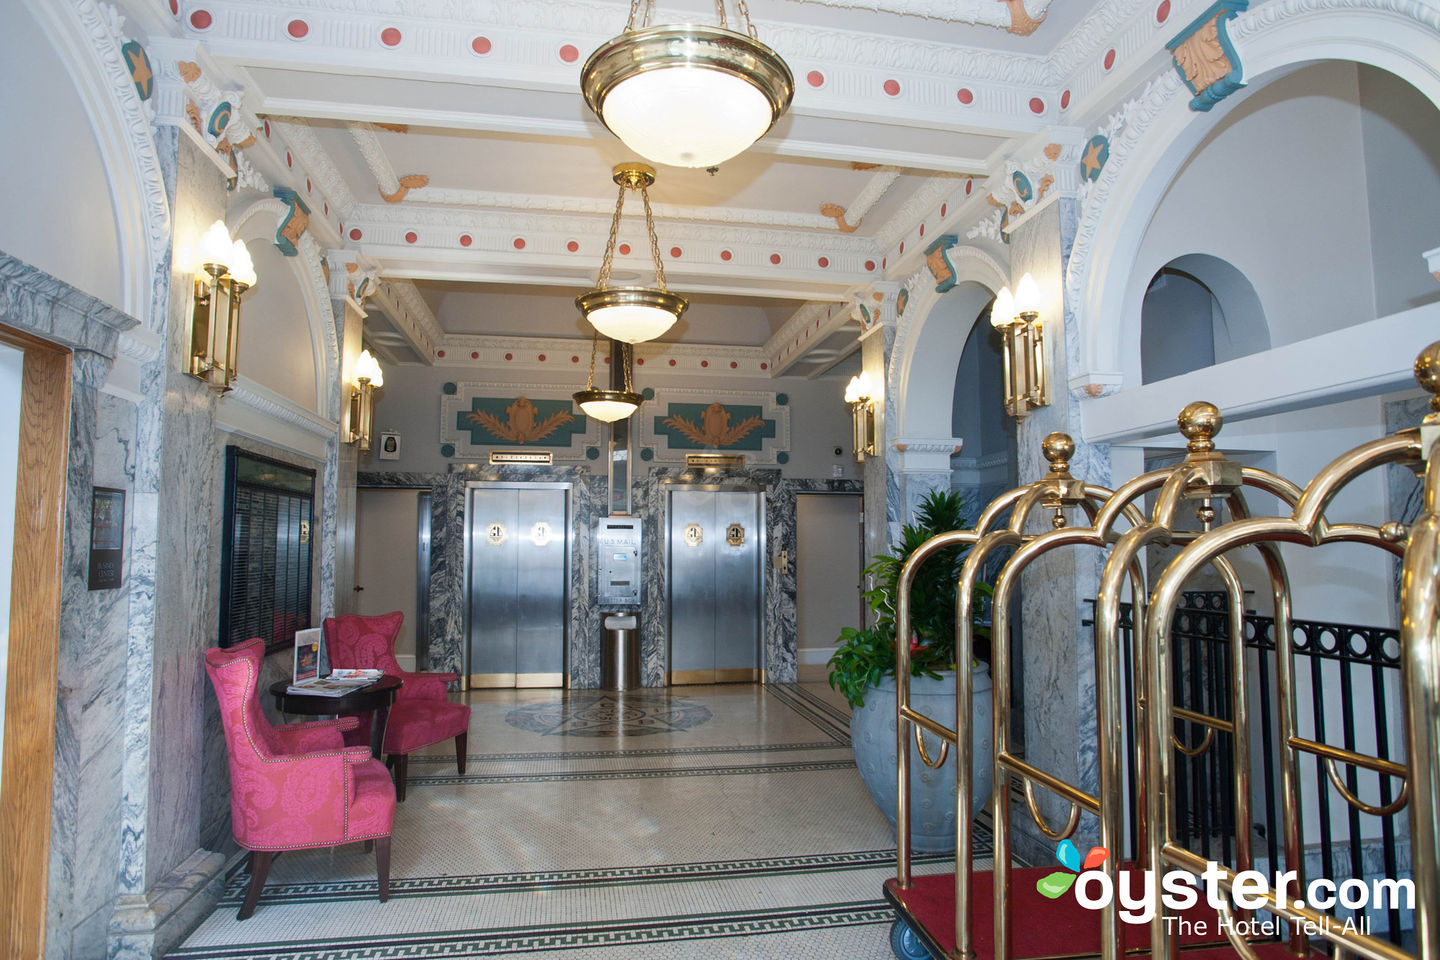 The 5 Most Romantic Hotels In San Antonio Texas Oyster Com